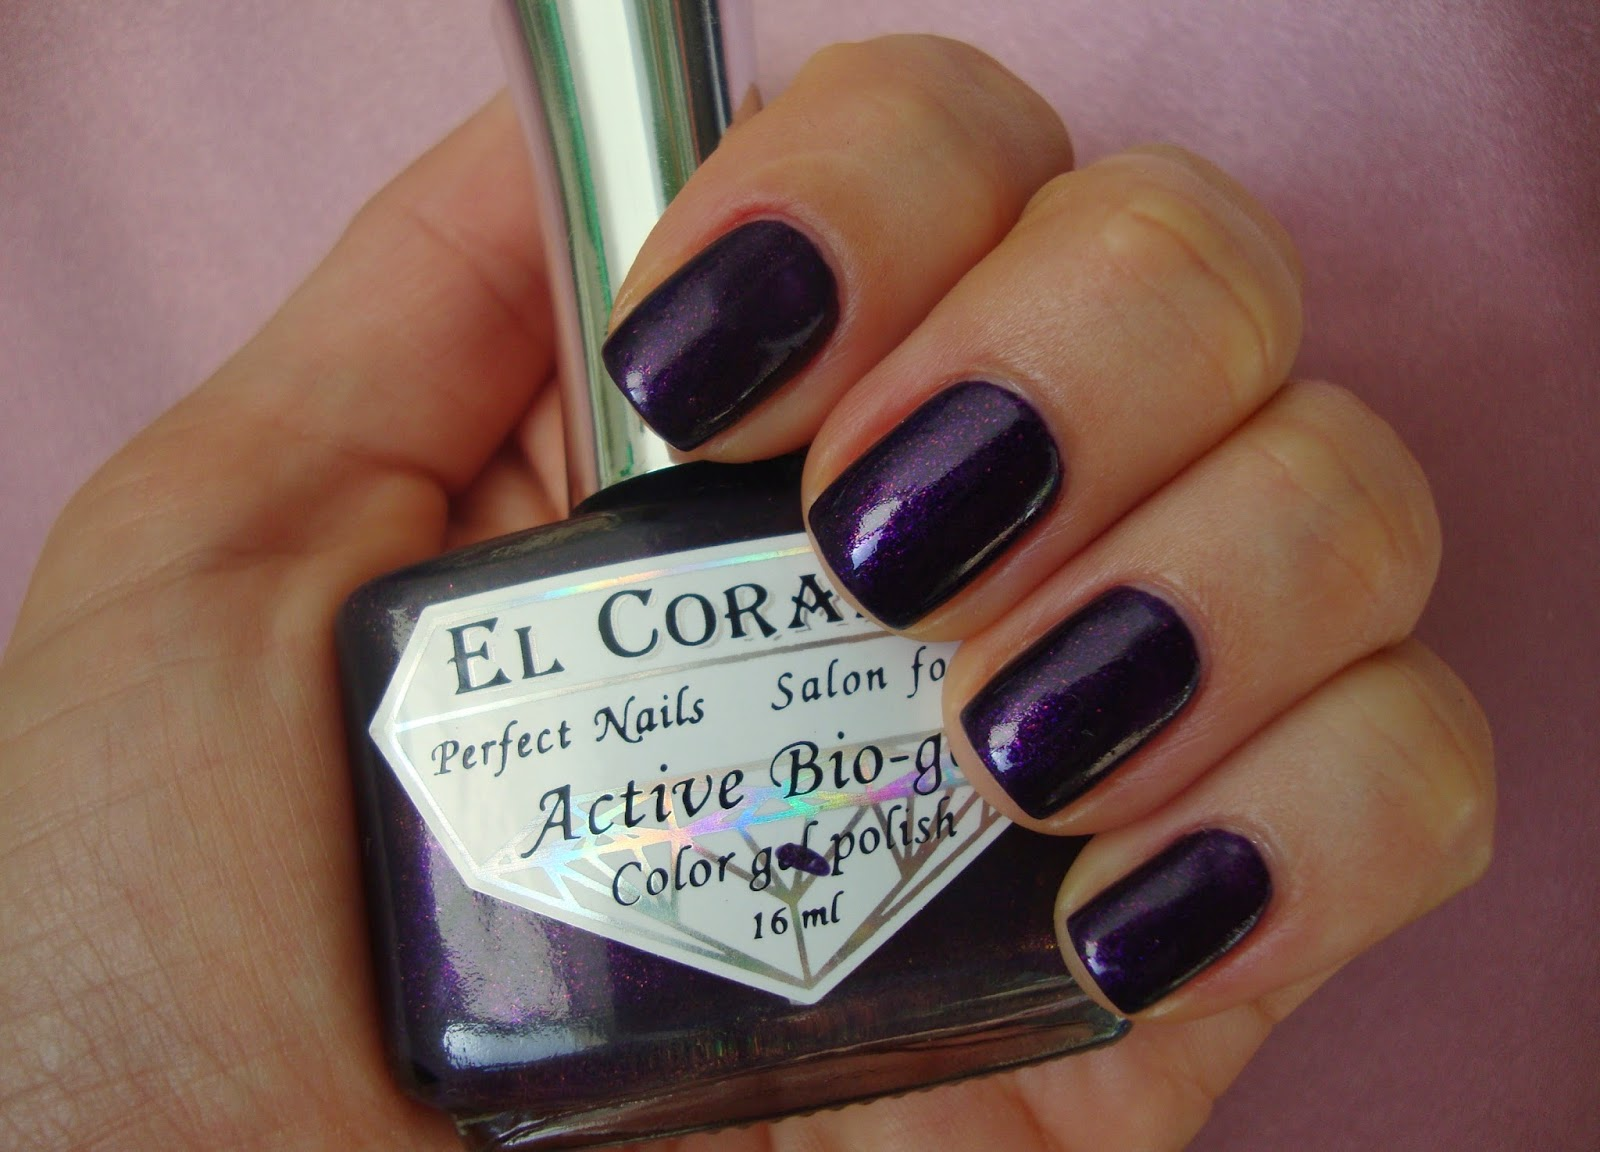 El Corazon Active Bio-Gel Magic of the Arabian Nights 423/580